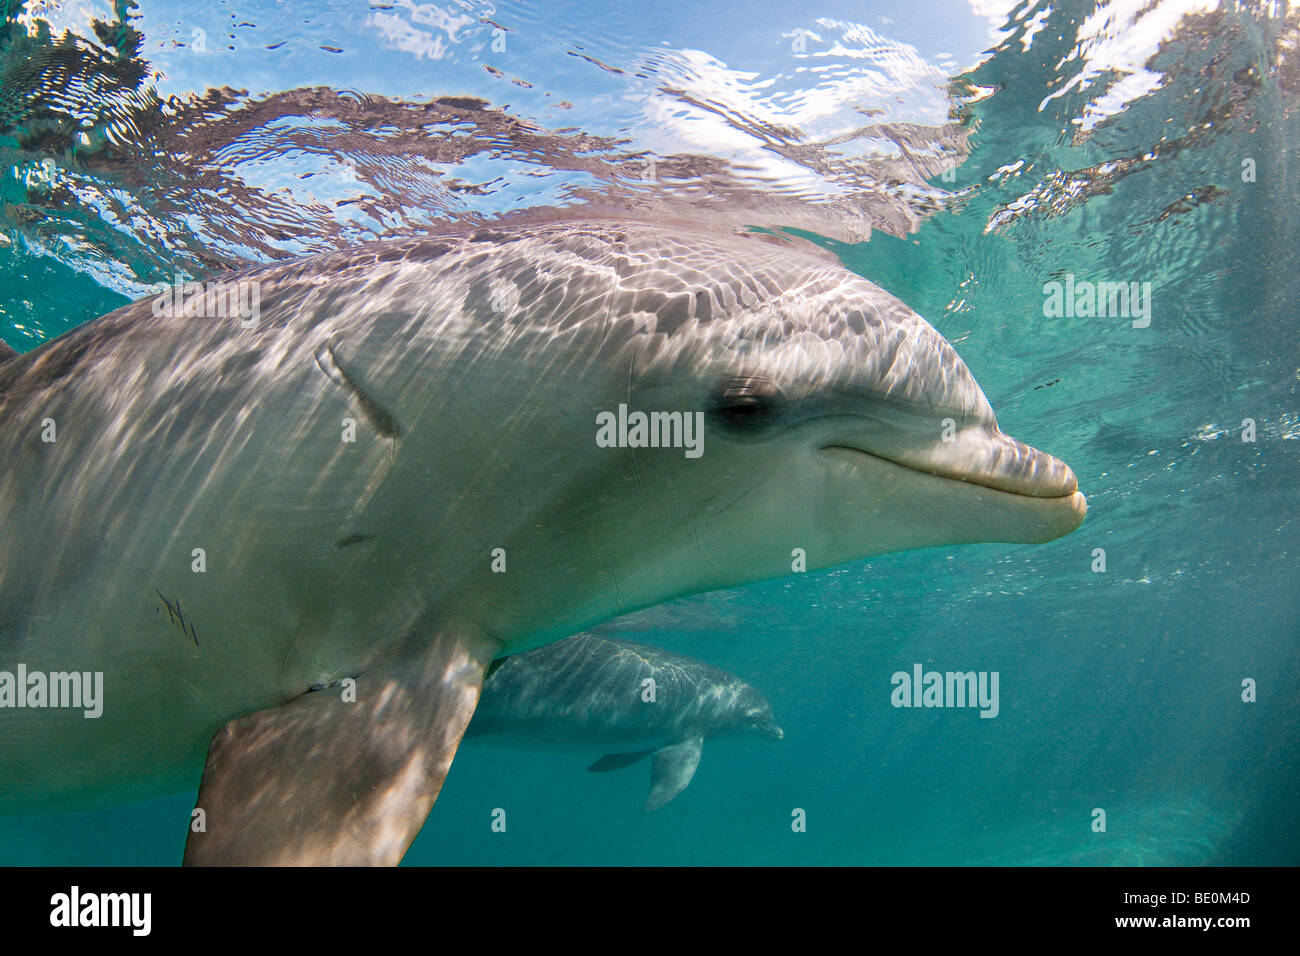 Atlantic Bottlenose Dolphin, Tursiops truncatus, Curacao, Netherlands Antilles, Caribbean. - Stock Image